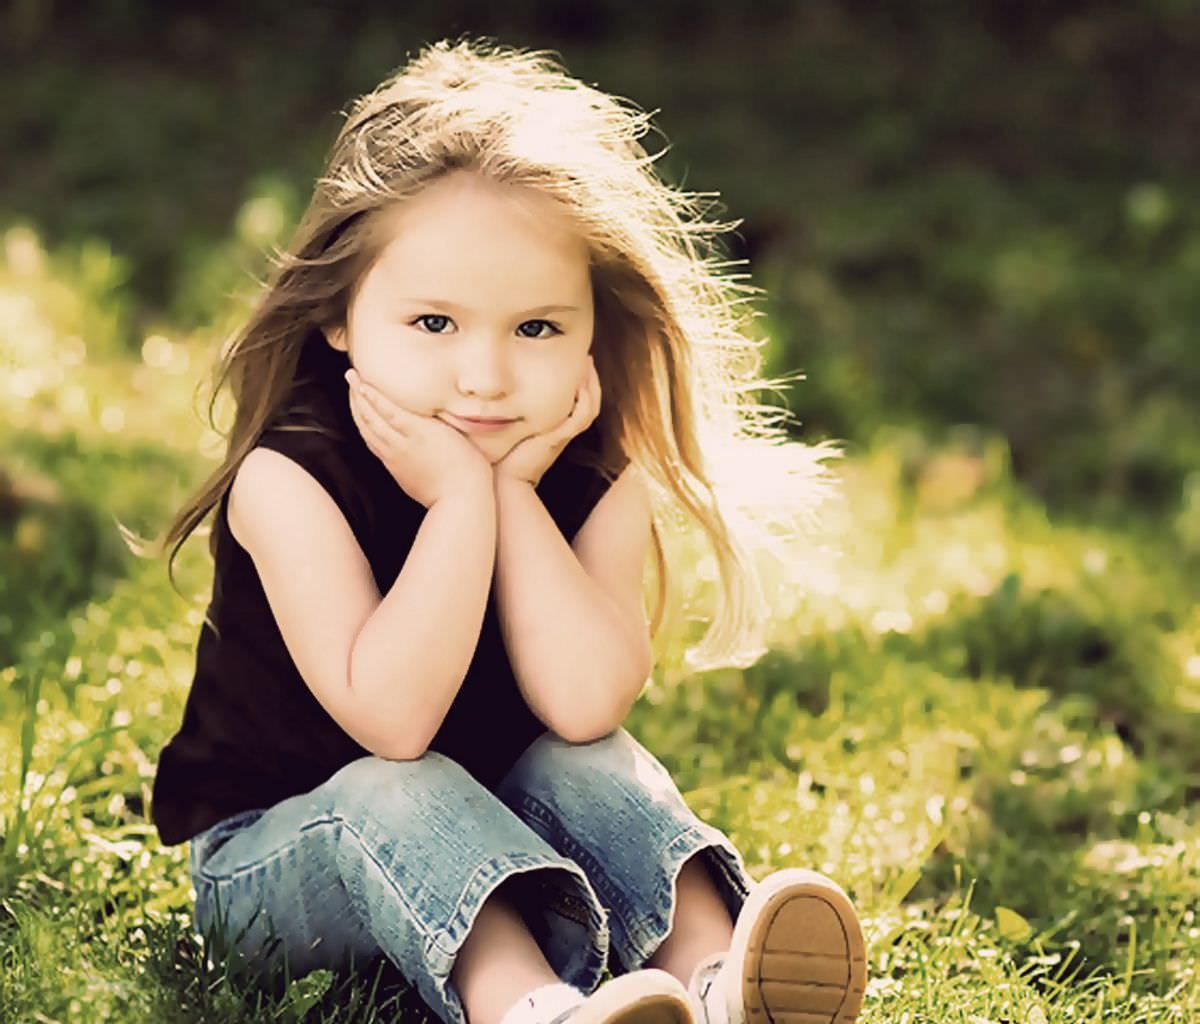 Cute baby Girl Posing Wallpaper